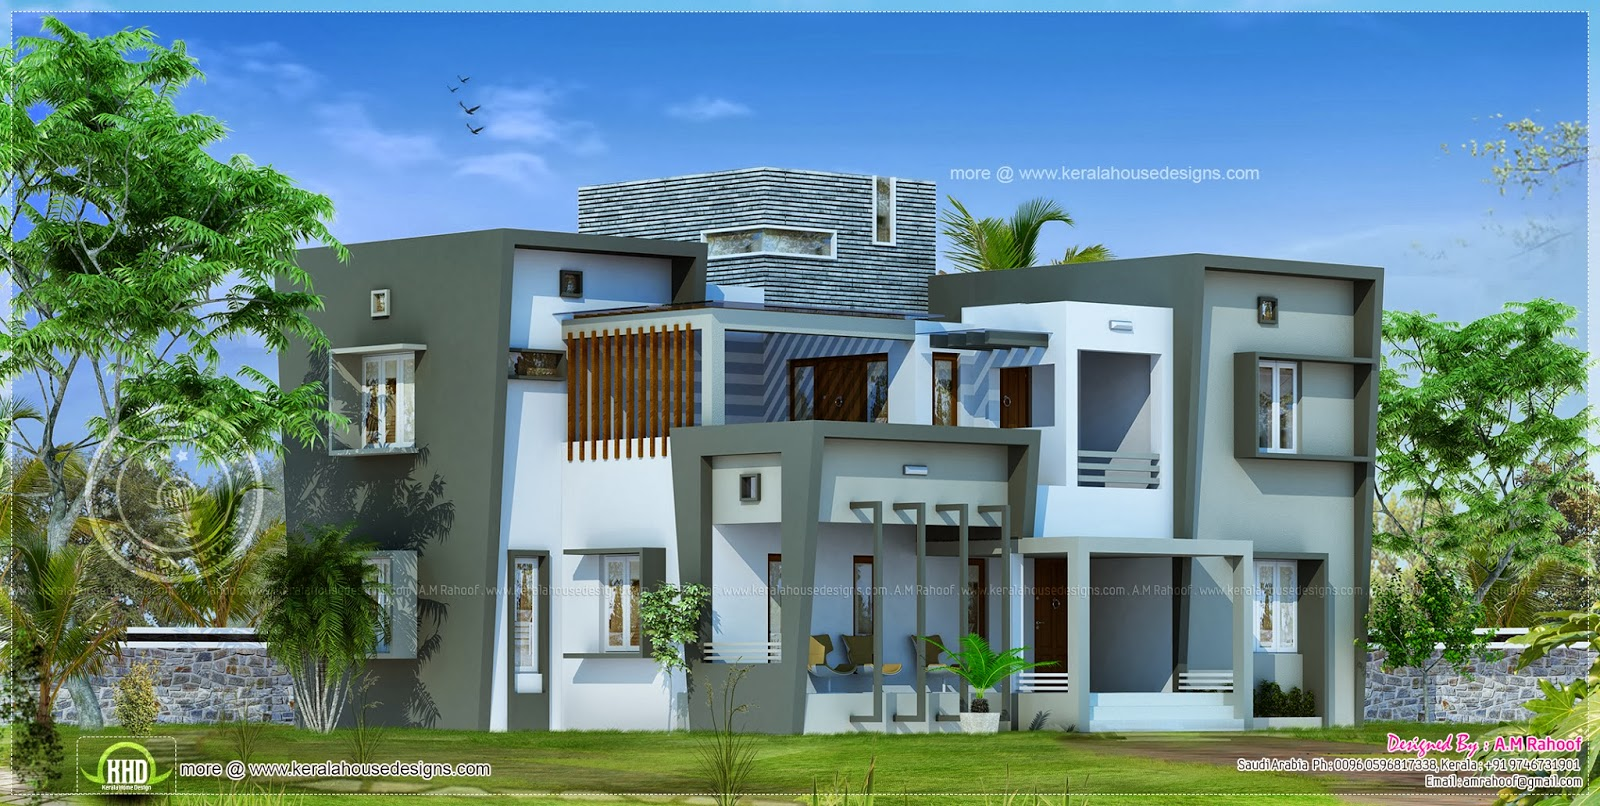 Modern House Design In 2850 Square Feet Home Kerala Plans: new house design